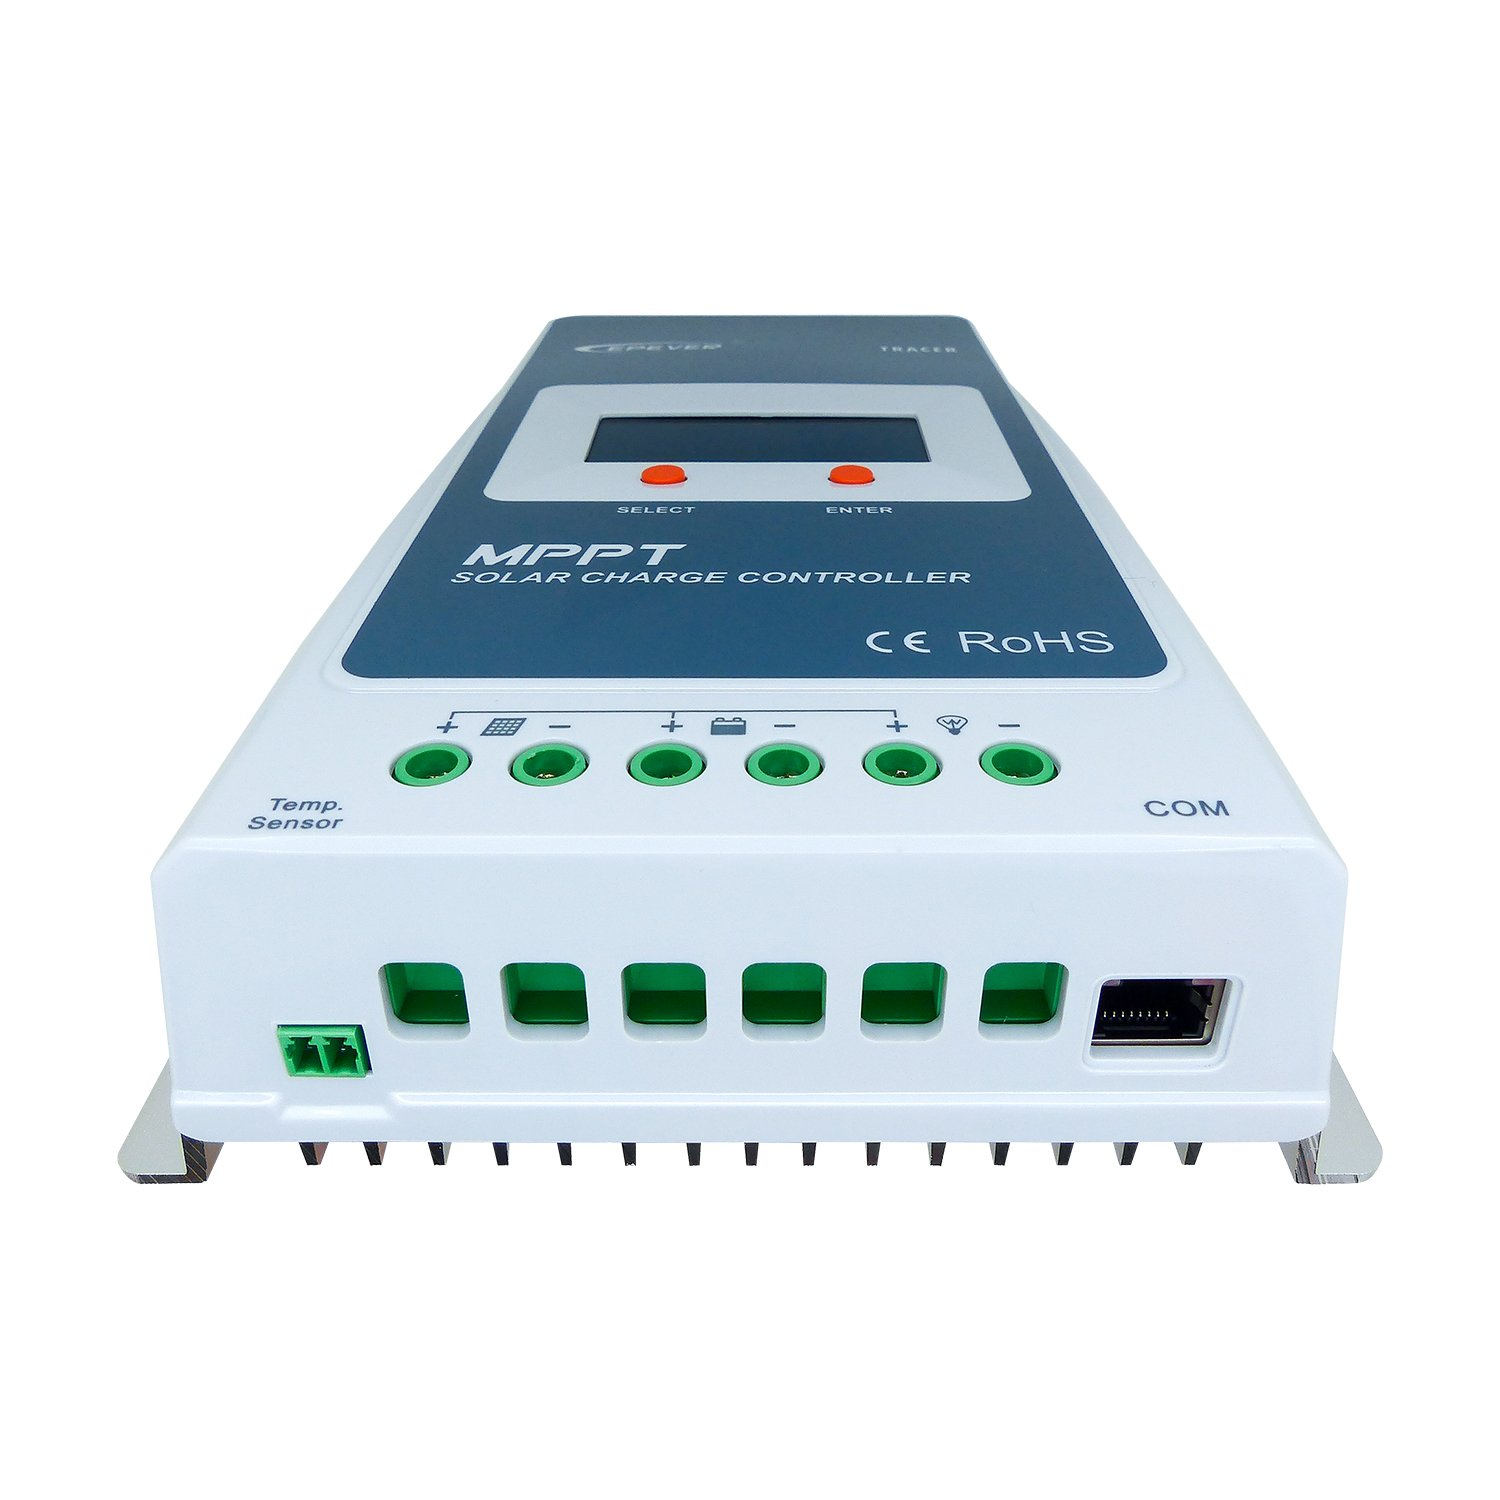 EPEVER MPPT Solar Charge Controller 20A 12V/24V Auto Work Tracer2210A Solar Panel Regulator with LCD Display Max PV 100V Input Power 260W/520W (20A, Tracer2210A) by EPsolar (Image #2)